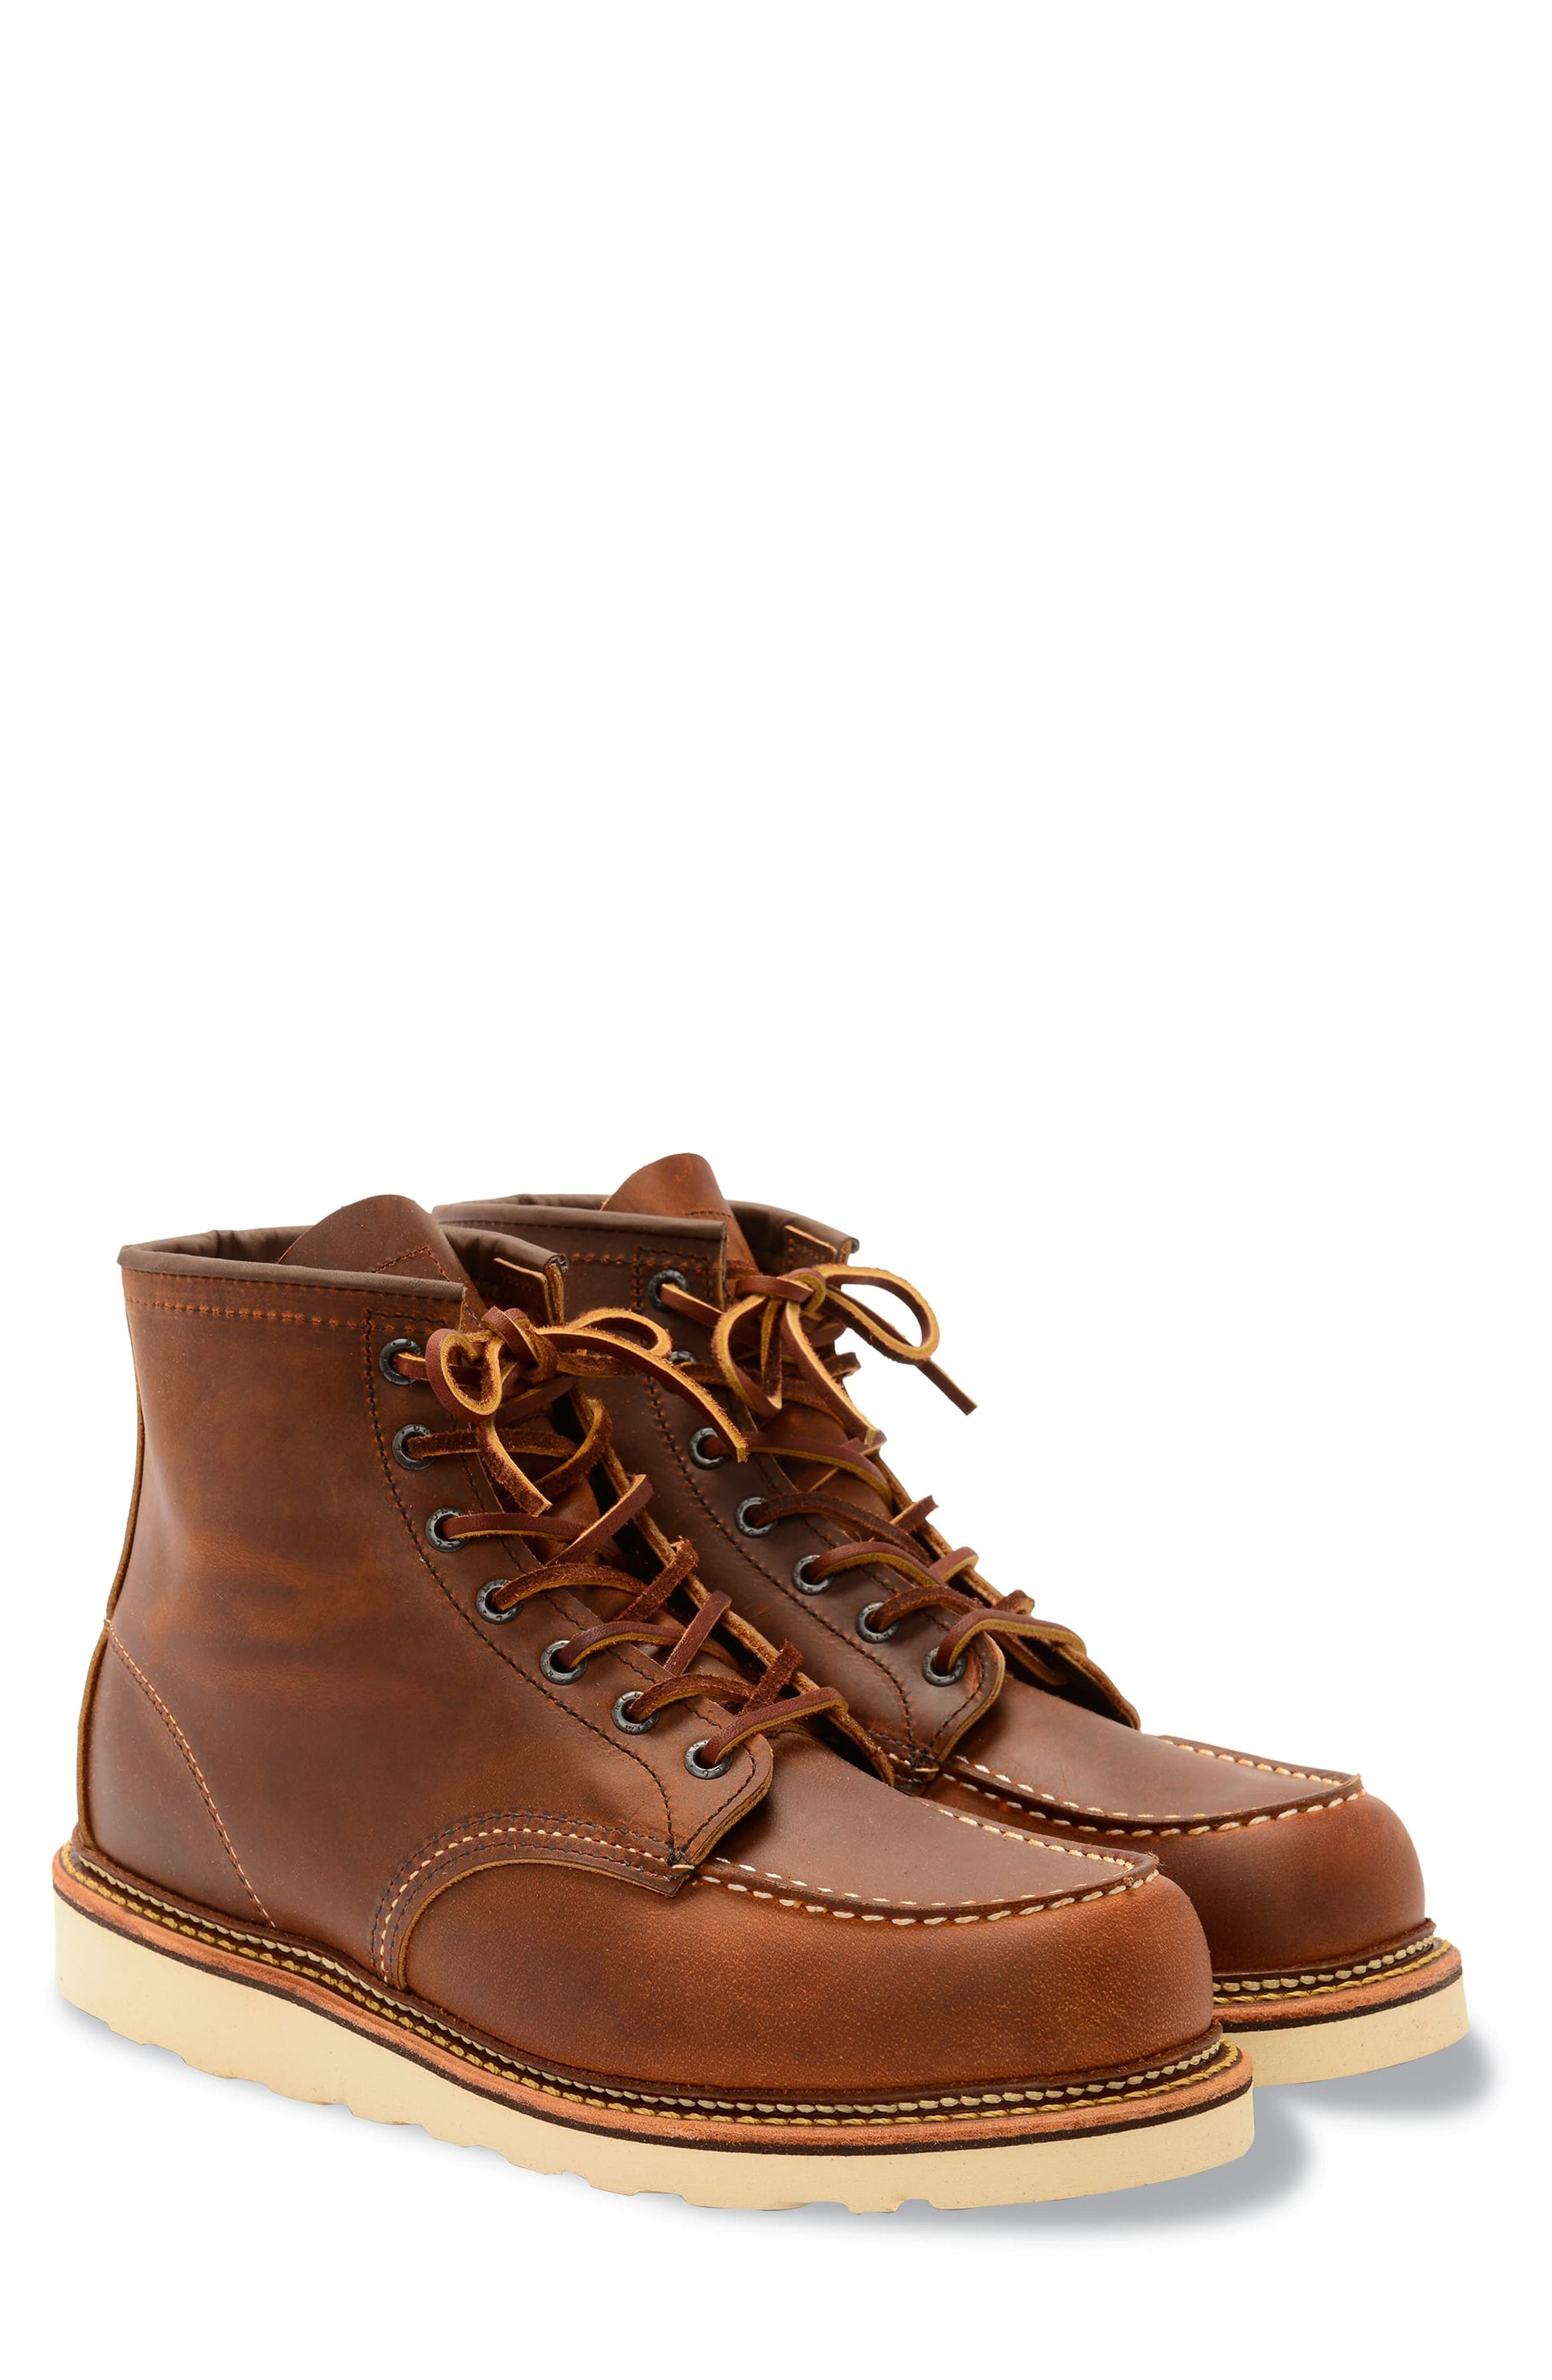 RED WING Moc Toe Boot, Main, color, COPPER BROWN- 1907